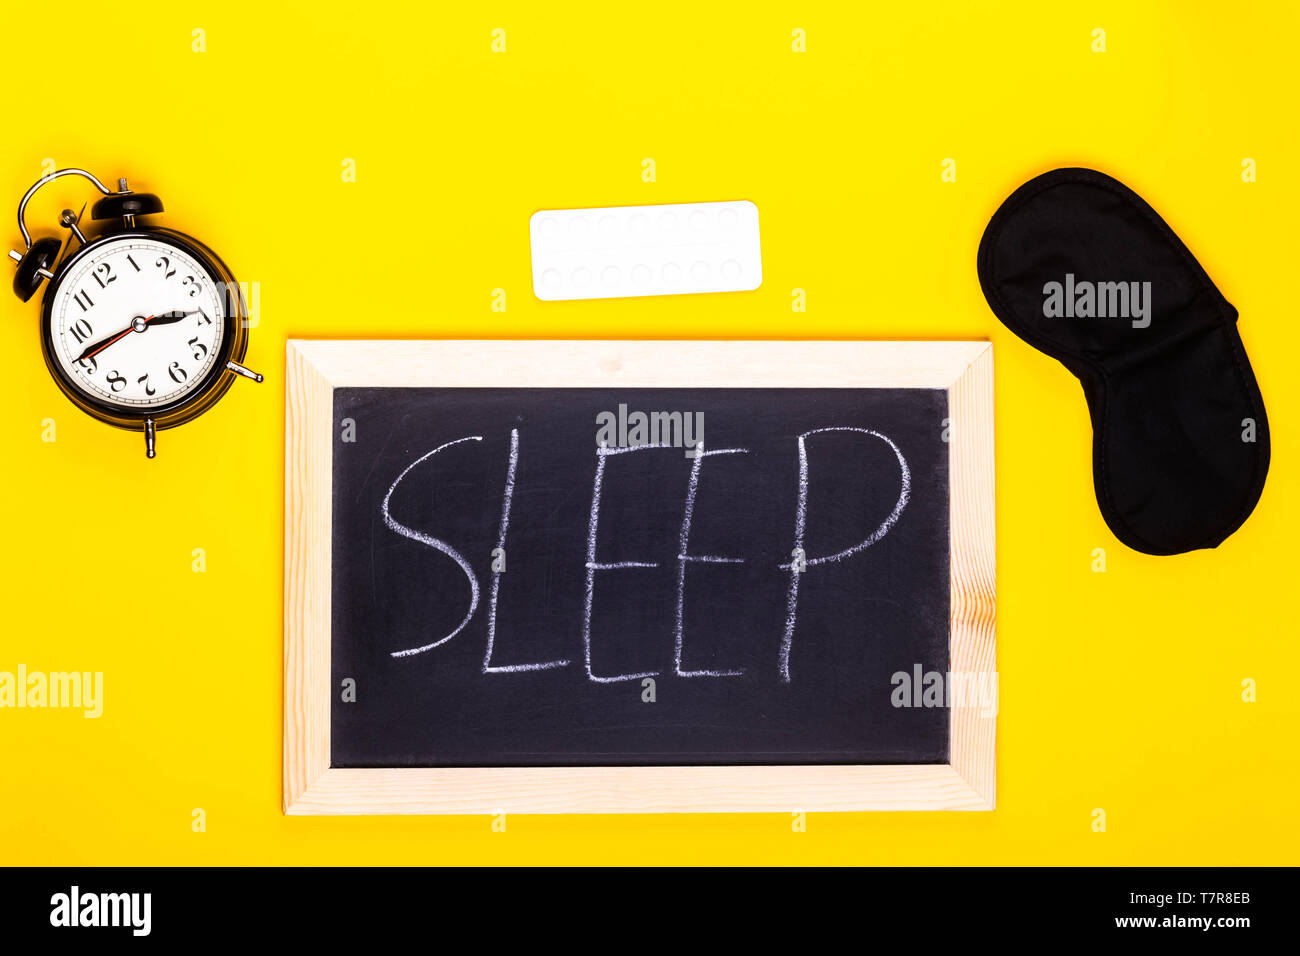 Sleep concept showing a blackboard spelling sleep with an alarm clock, sleeping pills and an eye mask - Stock Image